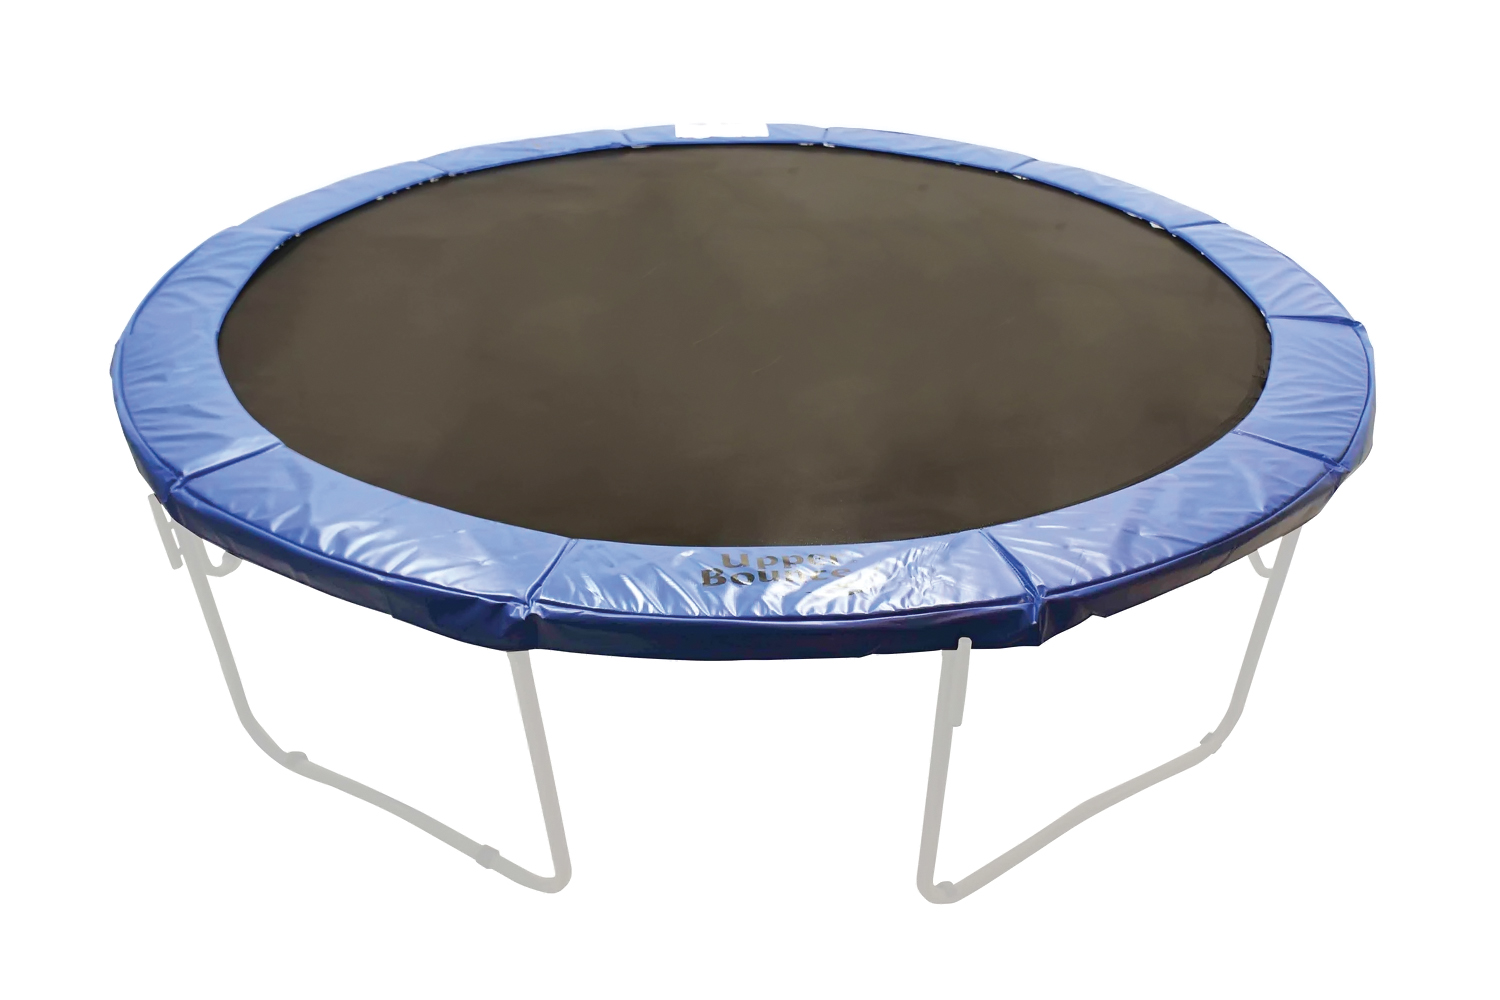 Upper Bounce Blue14' Premium Trampoline Replacement Safety Pad With Spring Cover Fits 14Ft Round 10